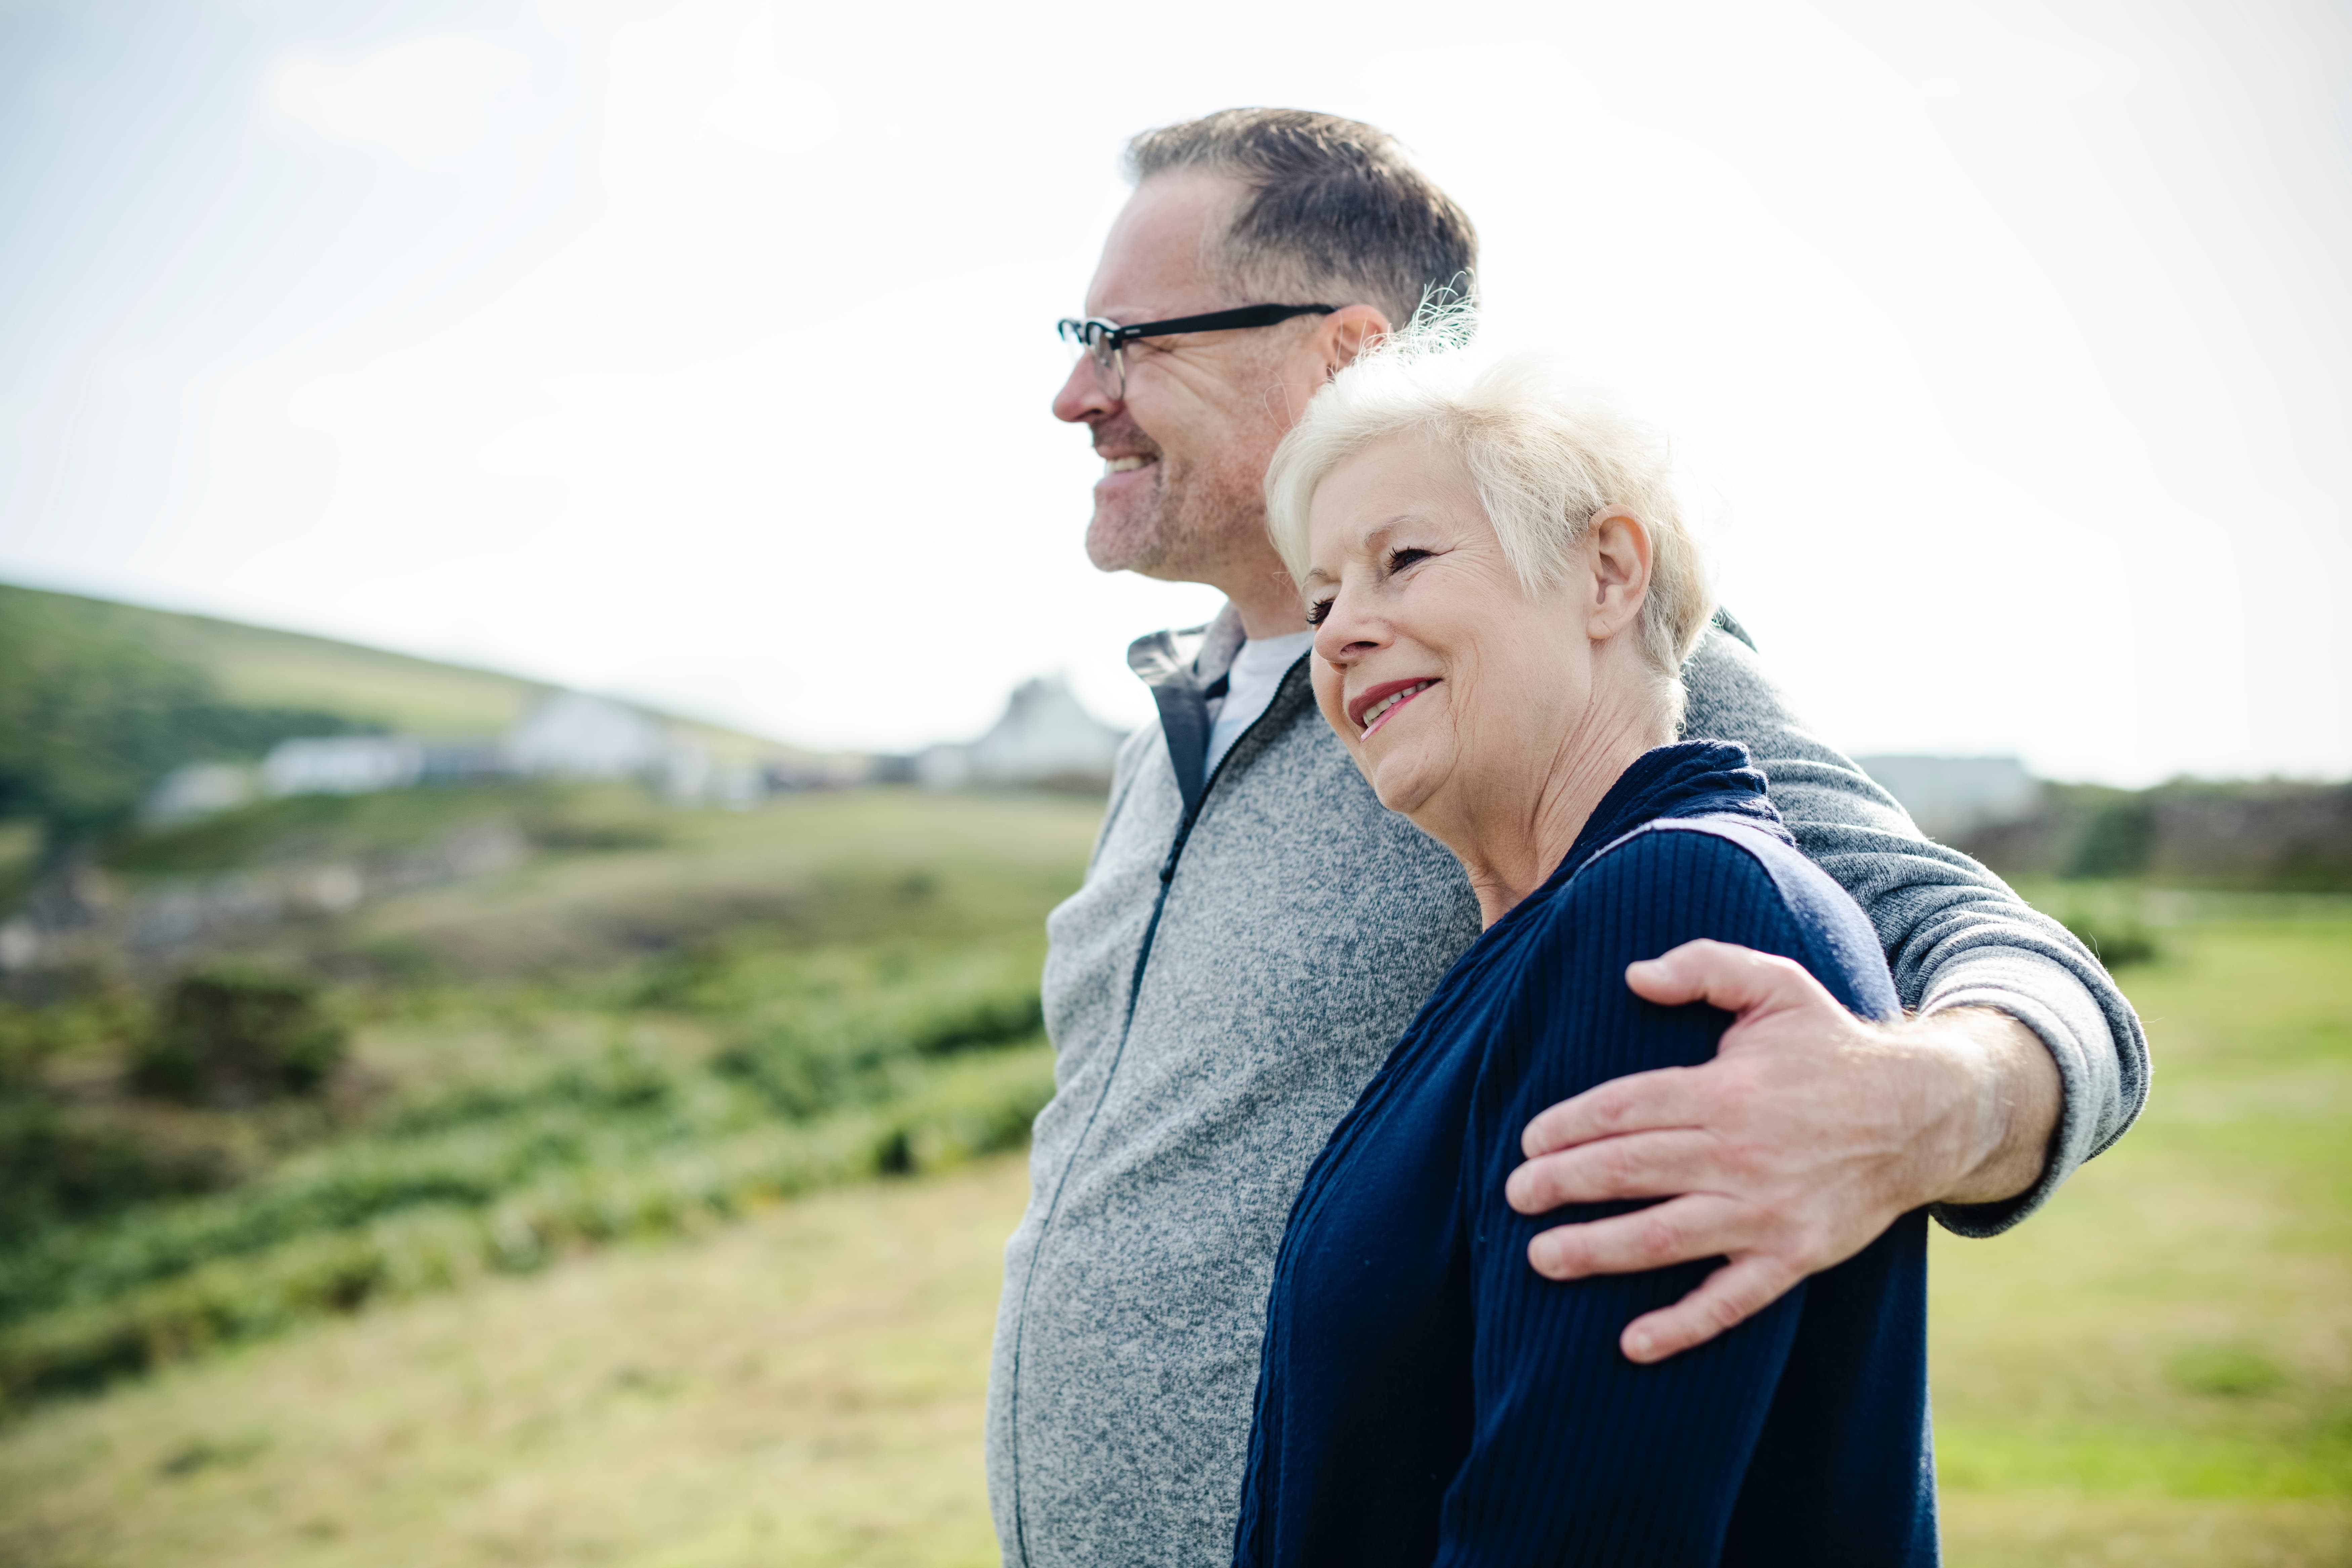 Huwe & Elaine can focus more on enjoying their retirement and less on work